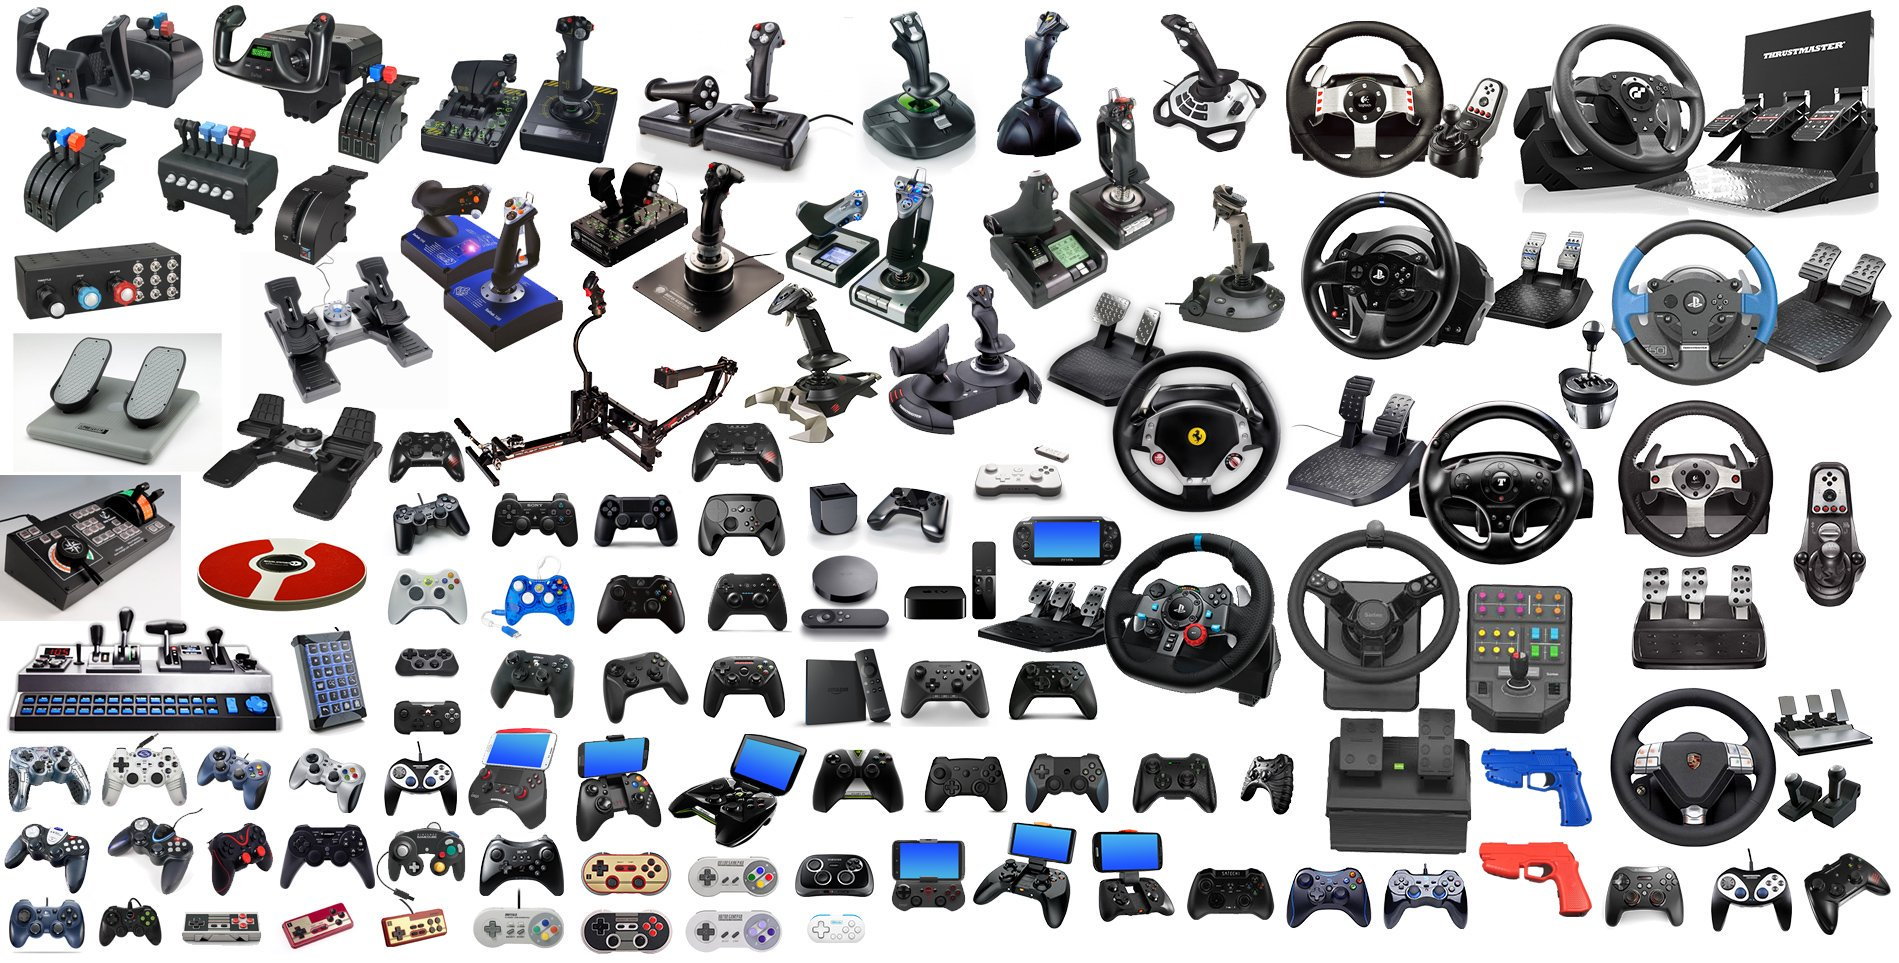 Rewired_controllers.jpg